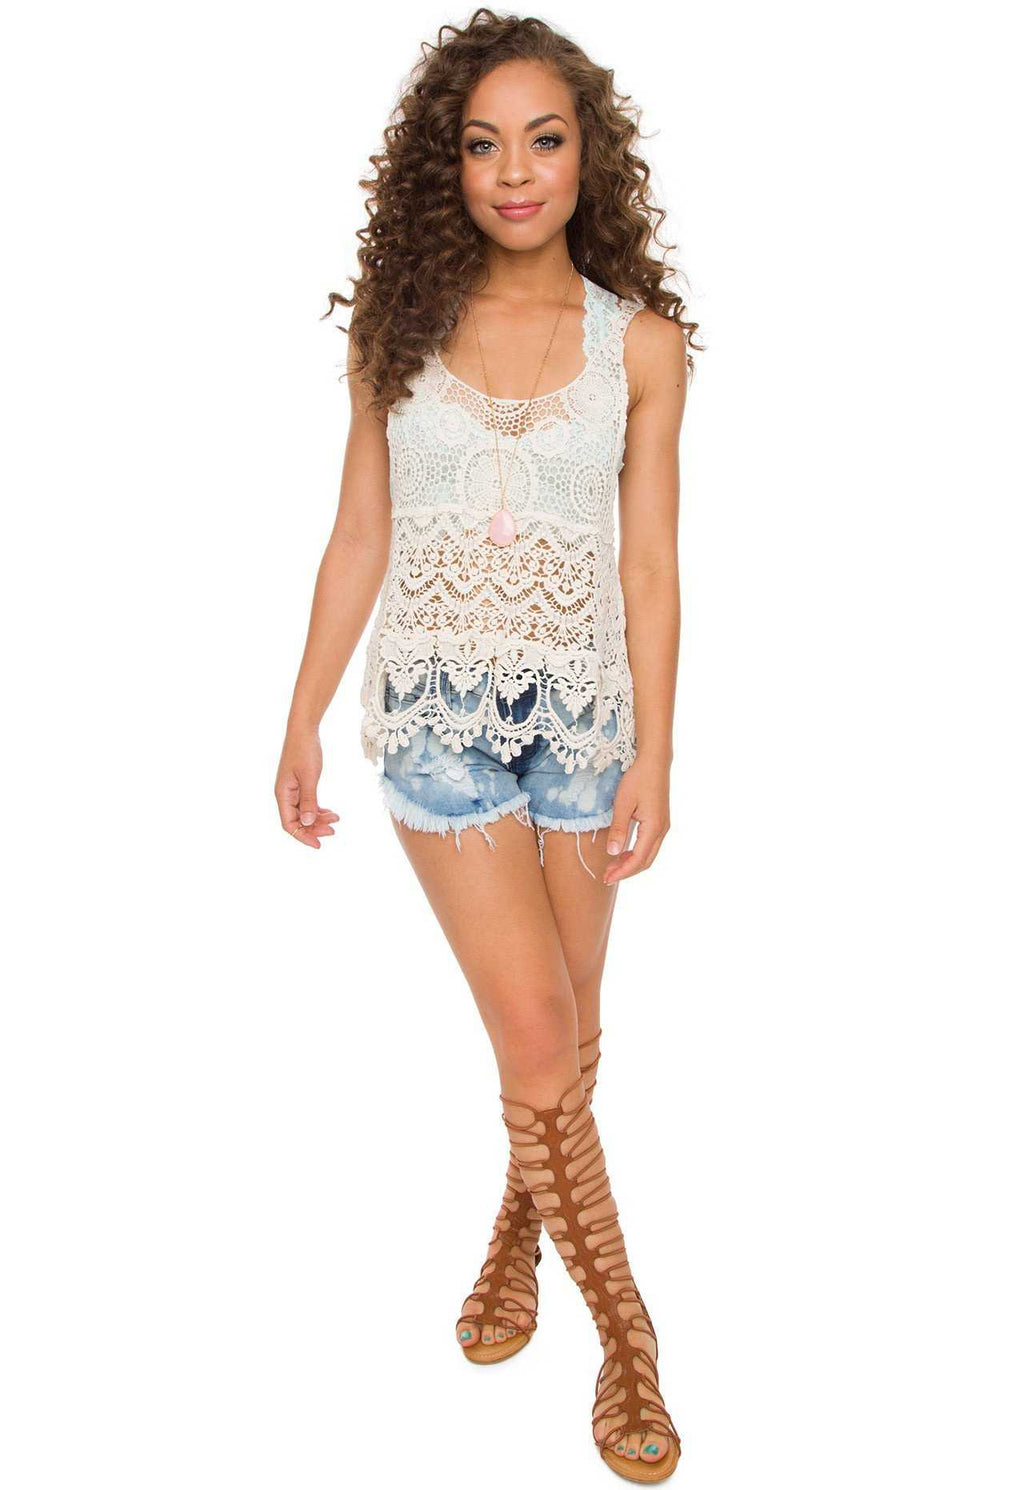 Tops - Saffron Crochet Top